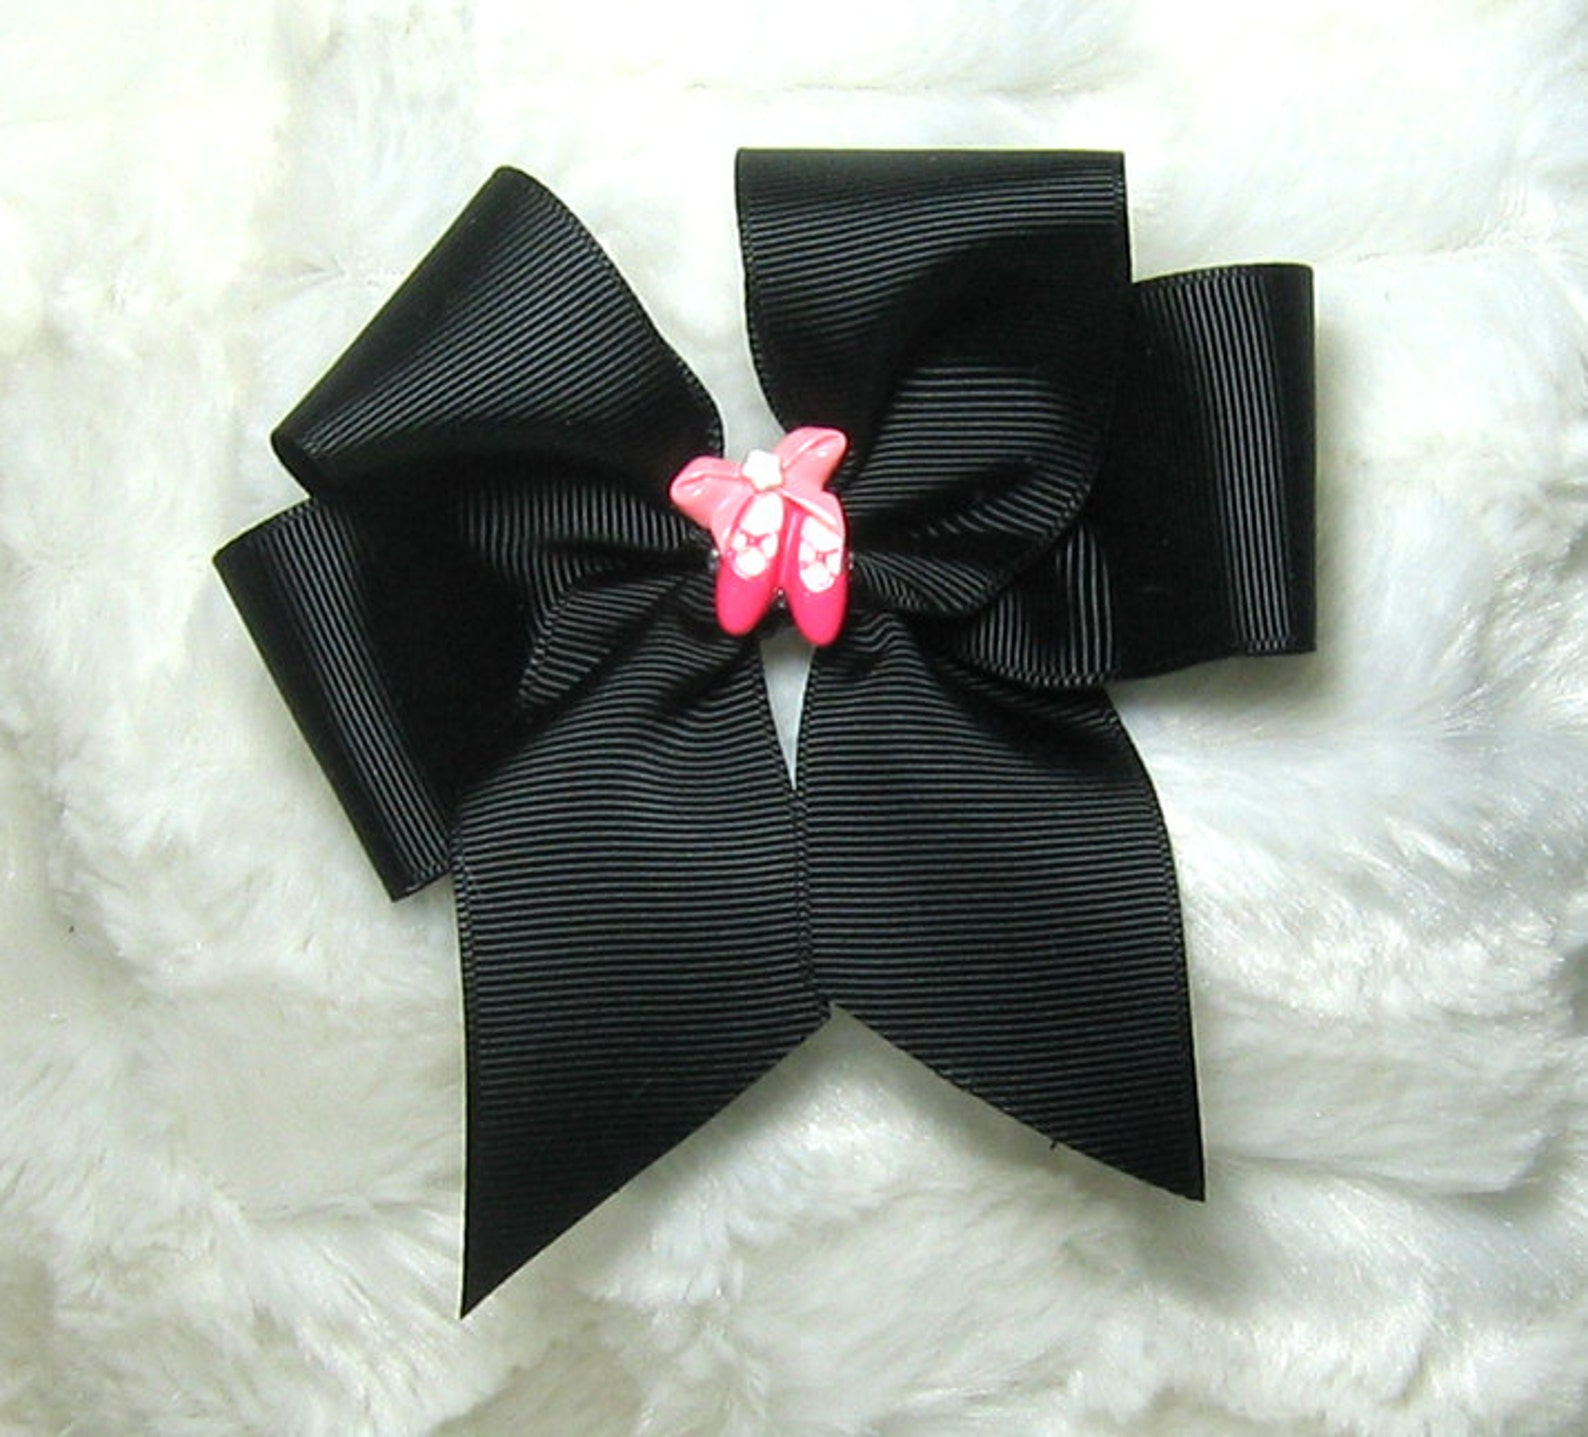 ballet dance bow - 4 inch single girls solid black hair bow with a pair of pink resin ballet shoes in the center